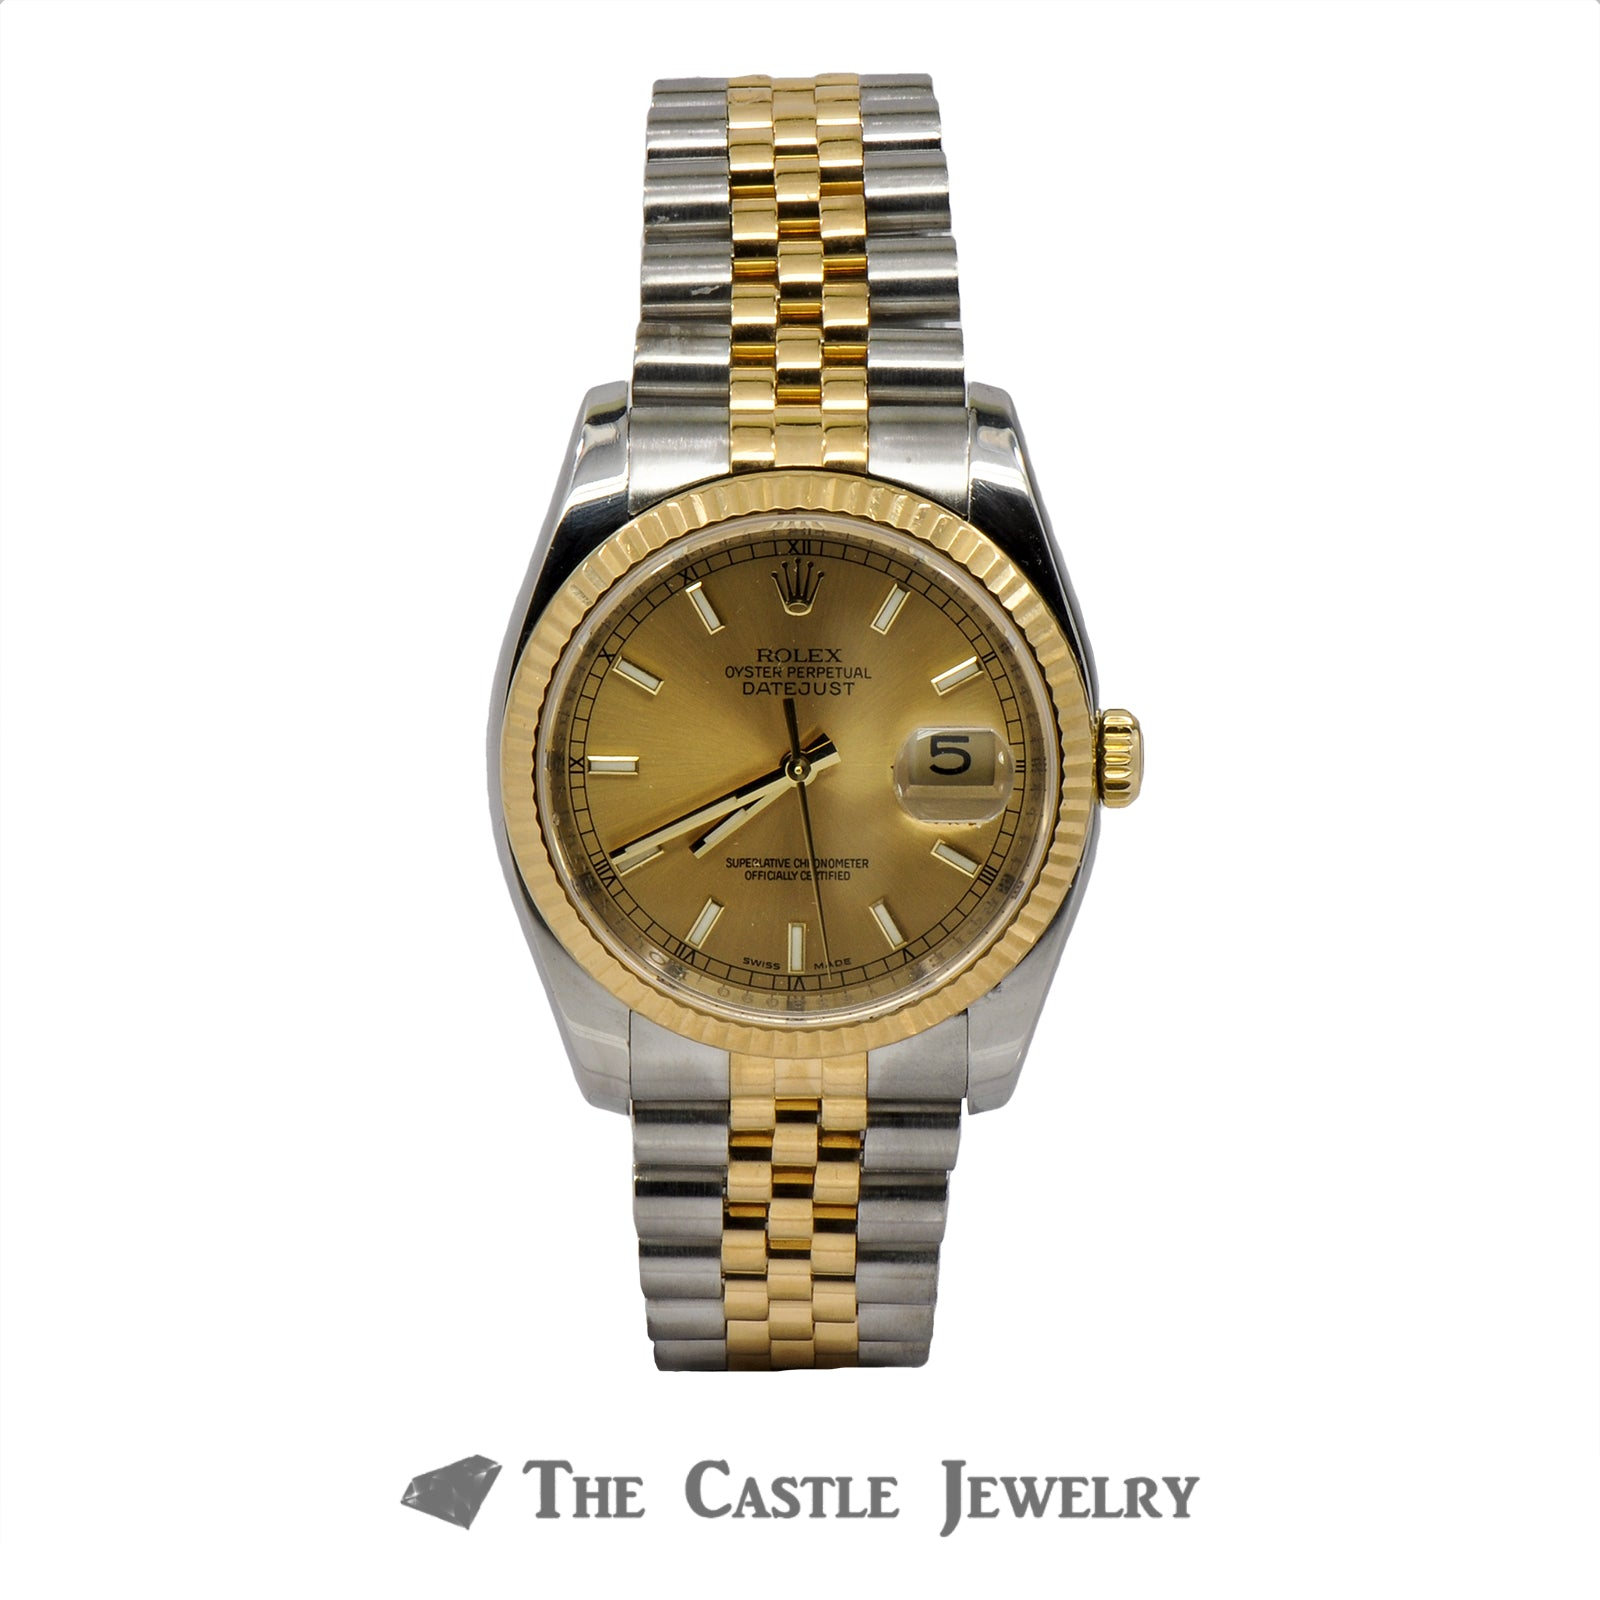 Rolex Datejust 116233 With Champagne Dial and Fluted Bezel